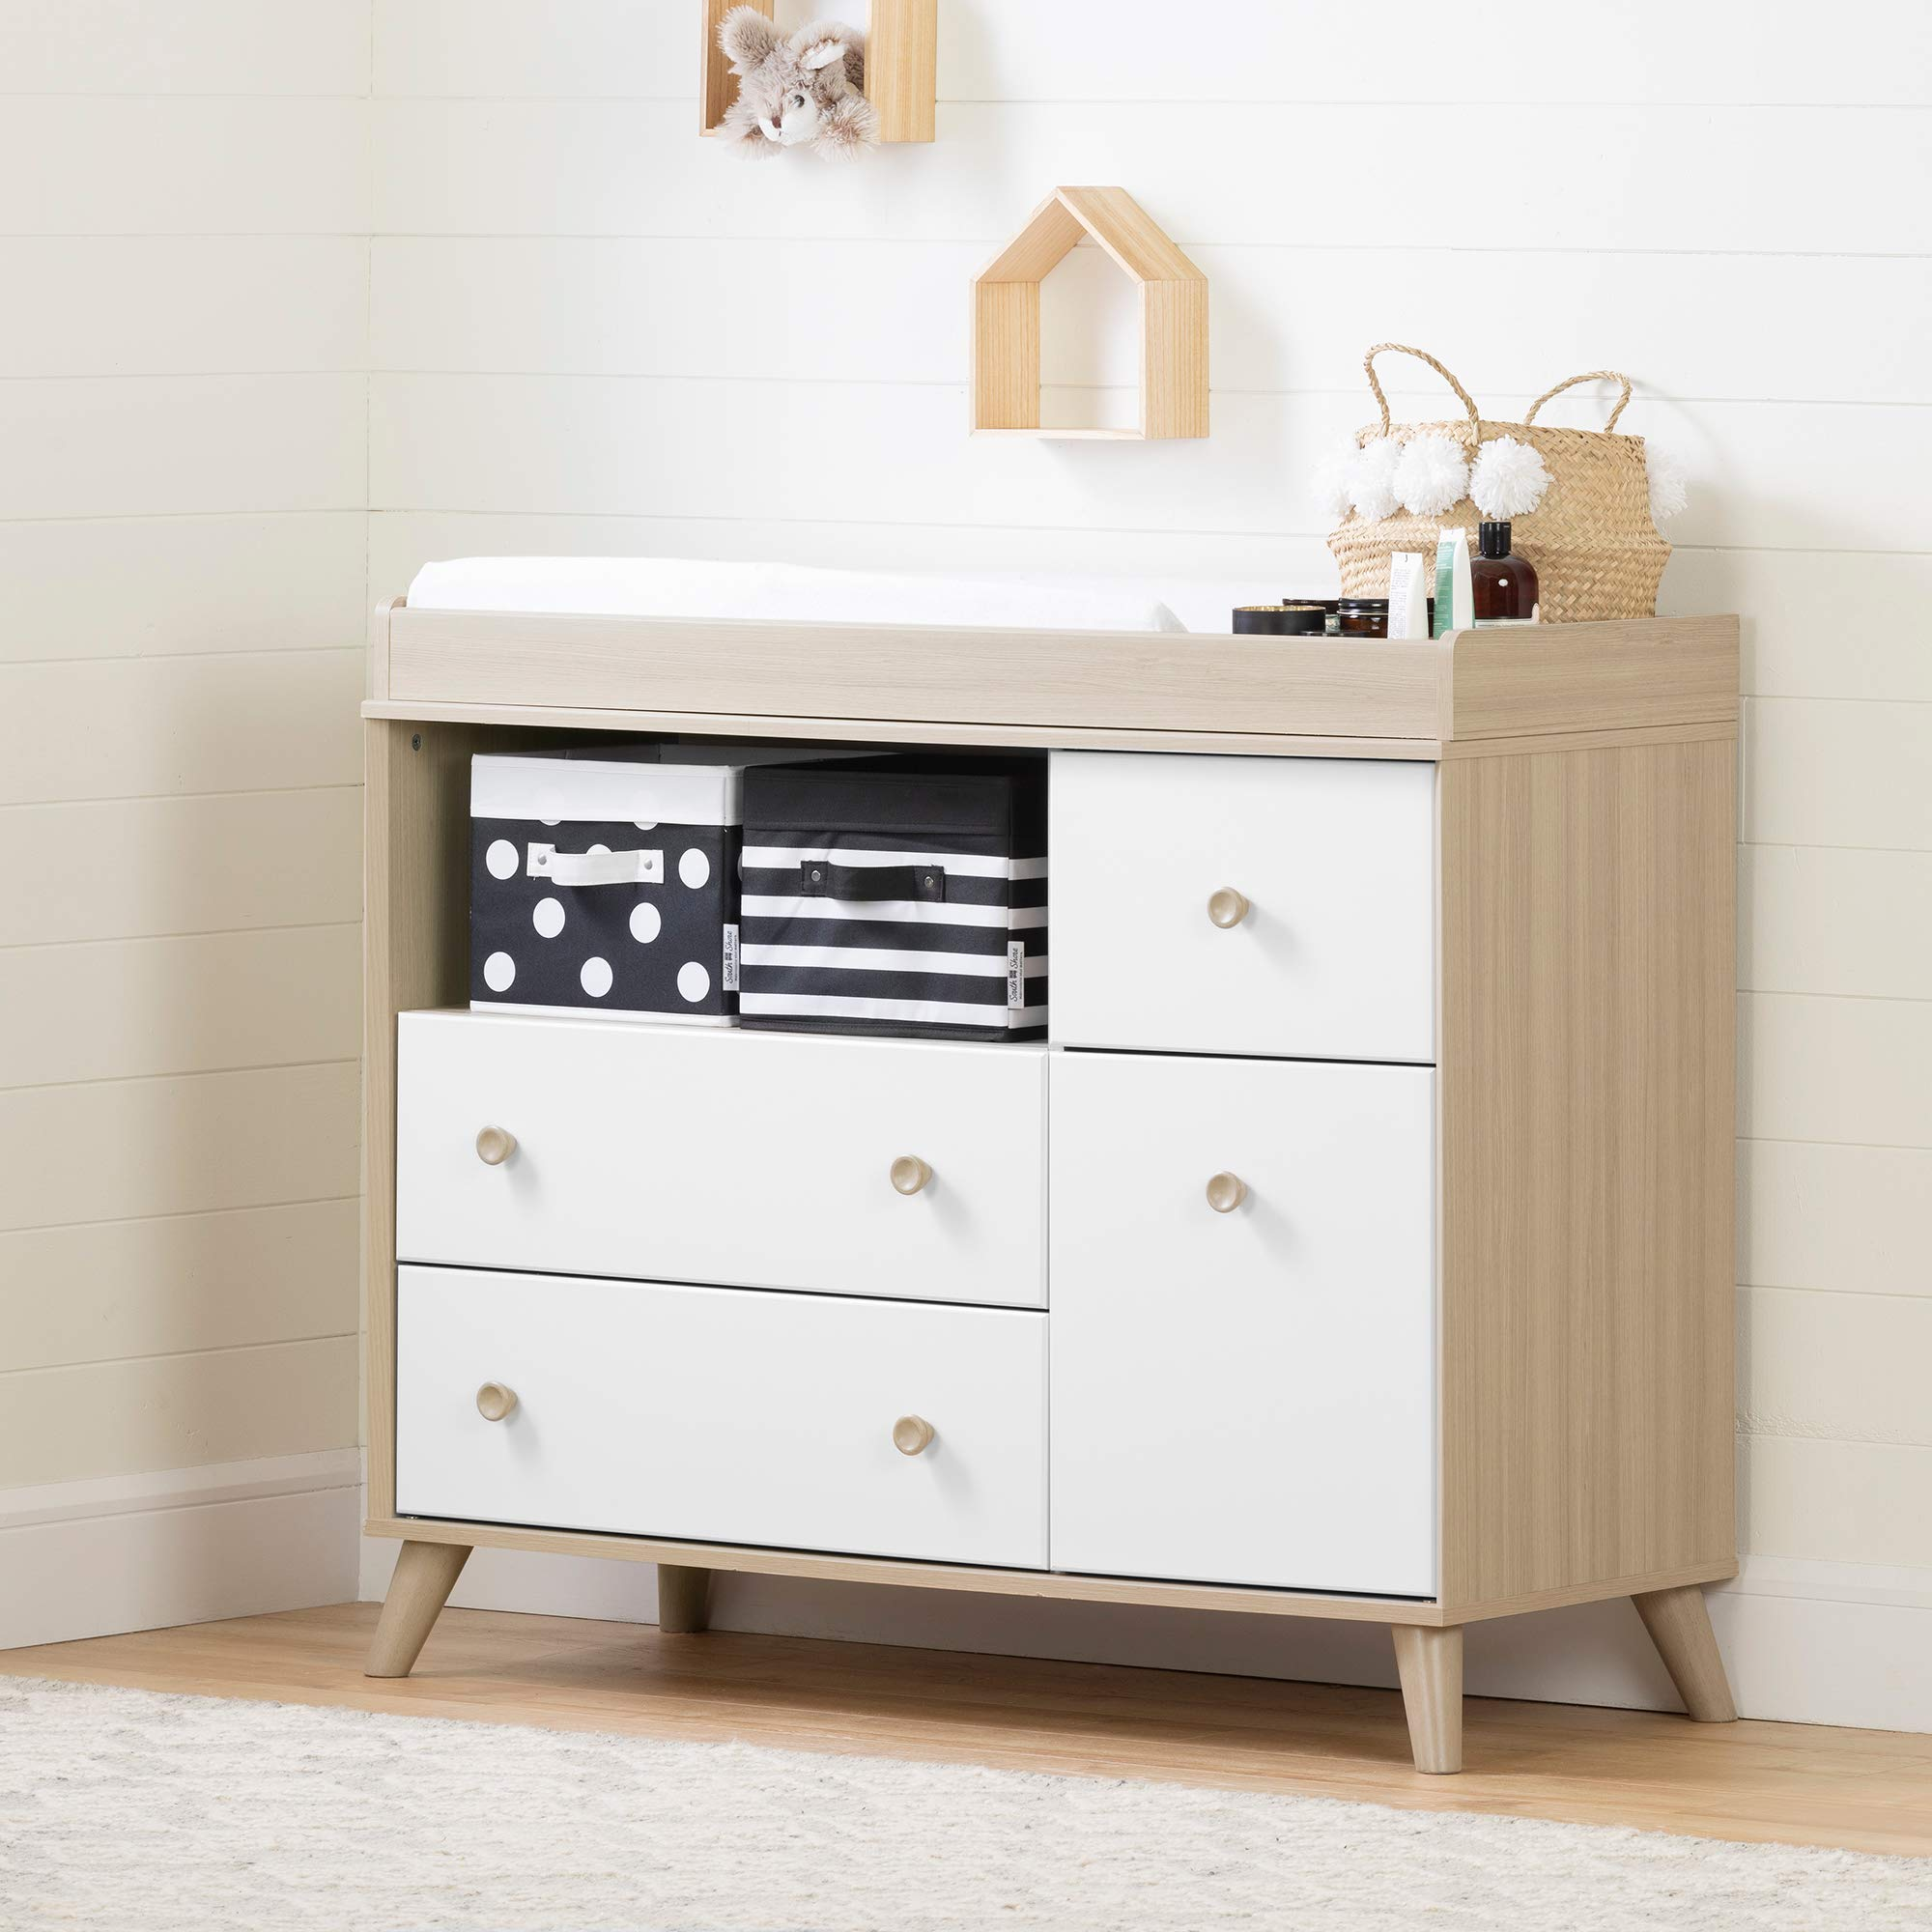 South Shore Yodi Changing Table with Drawers-Soft Elm and Pure White by South Shore